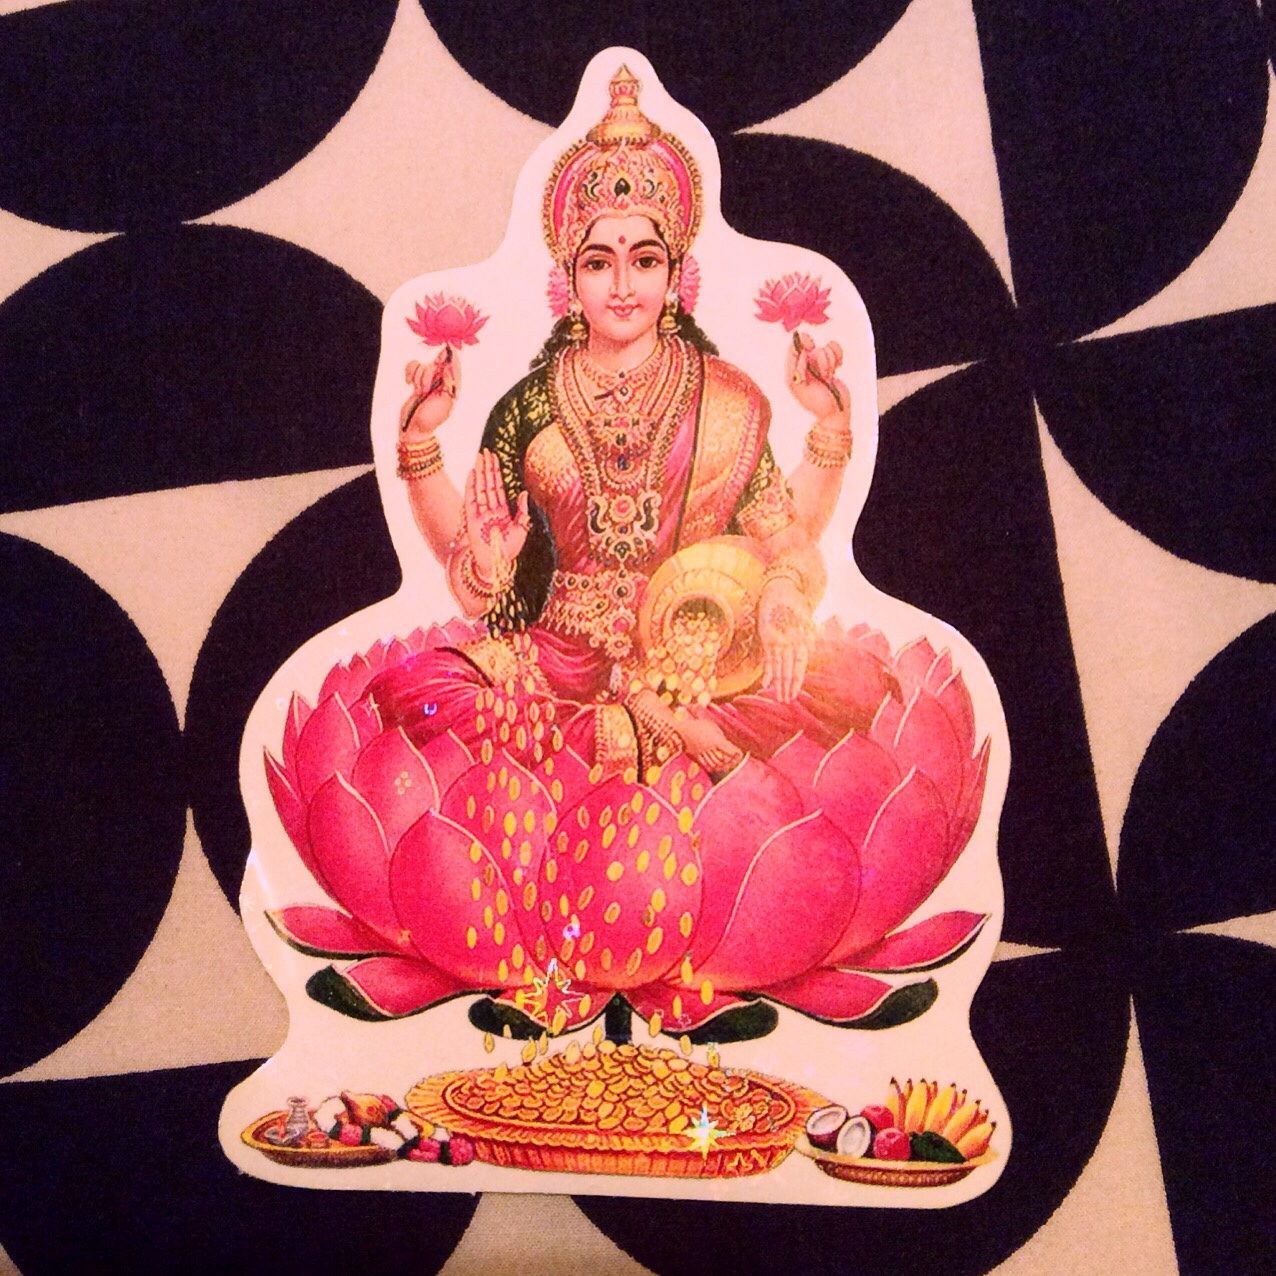 Laxmi the Hindu goddess of abundance